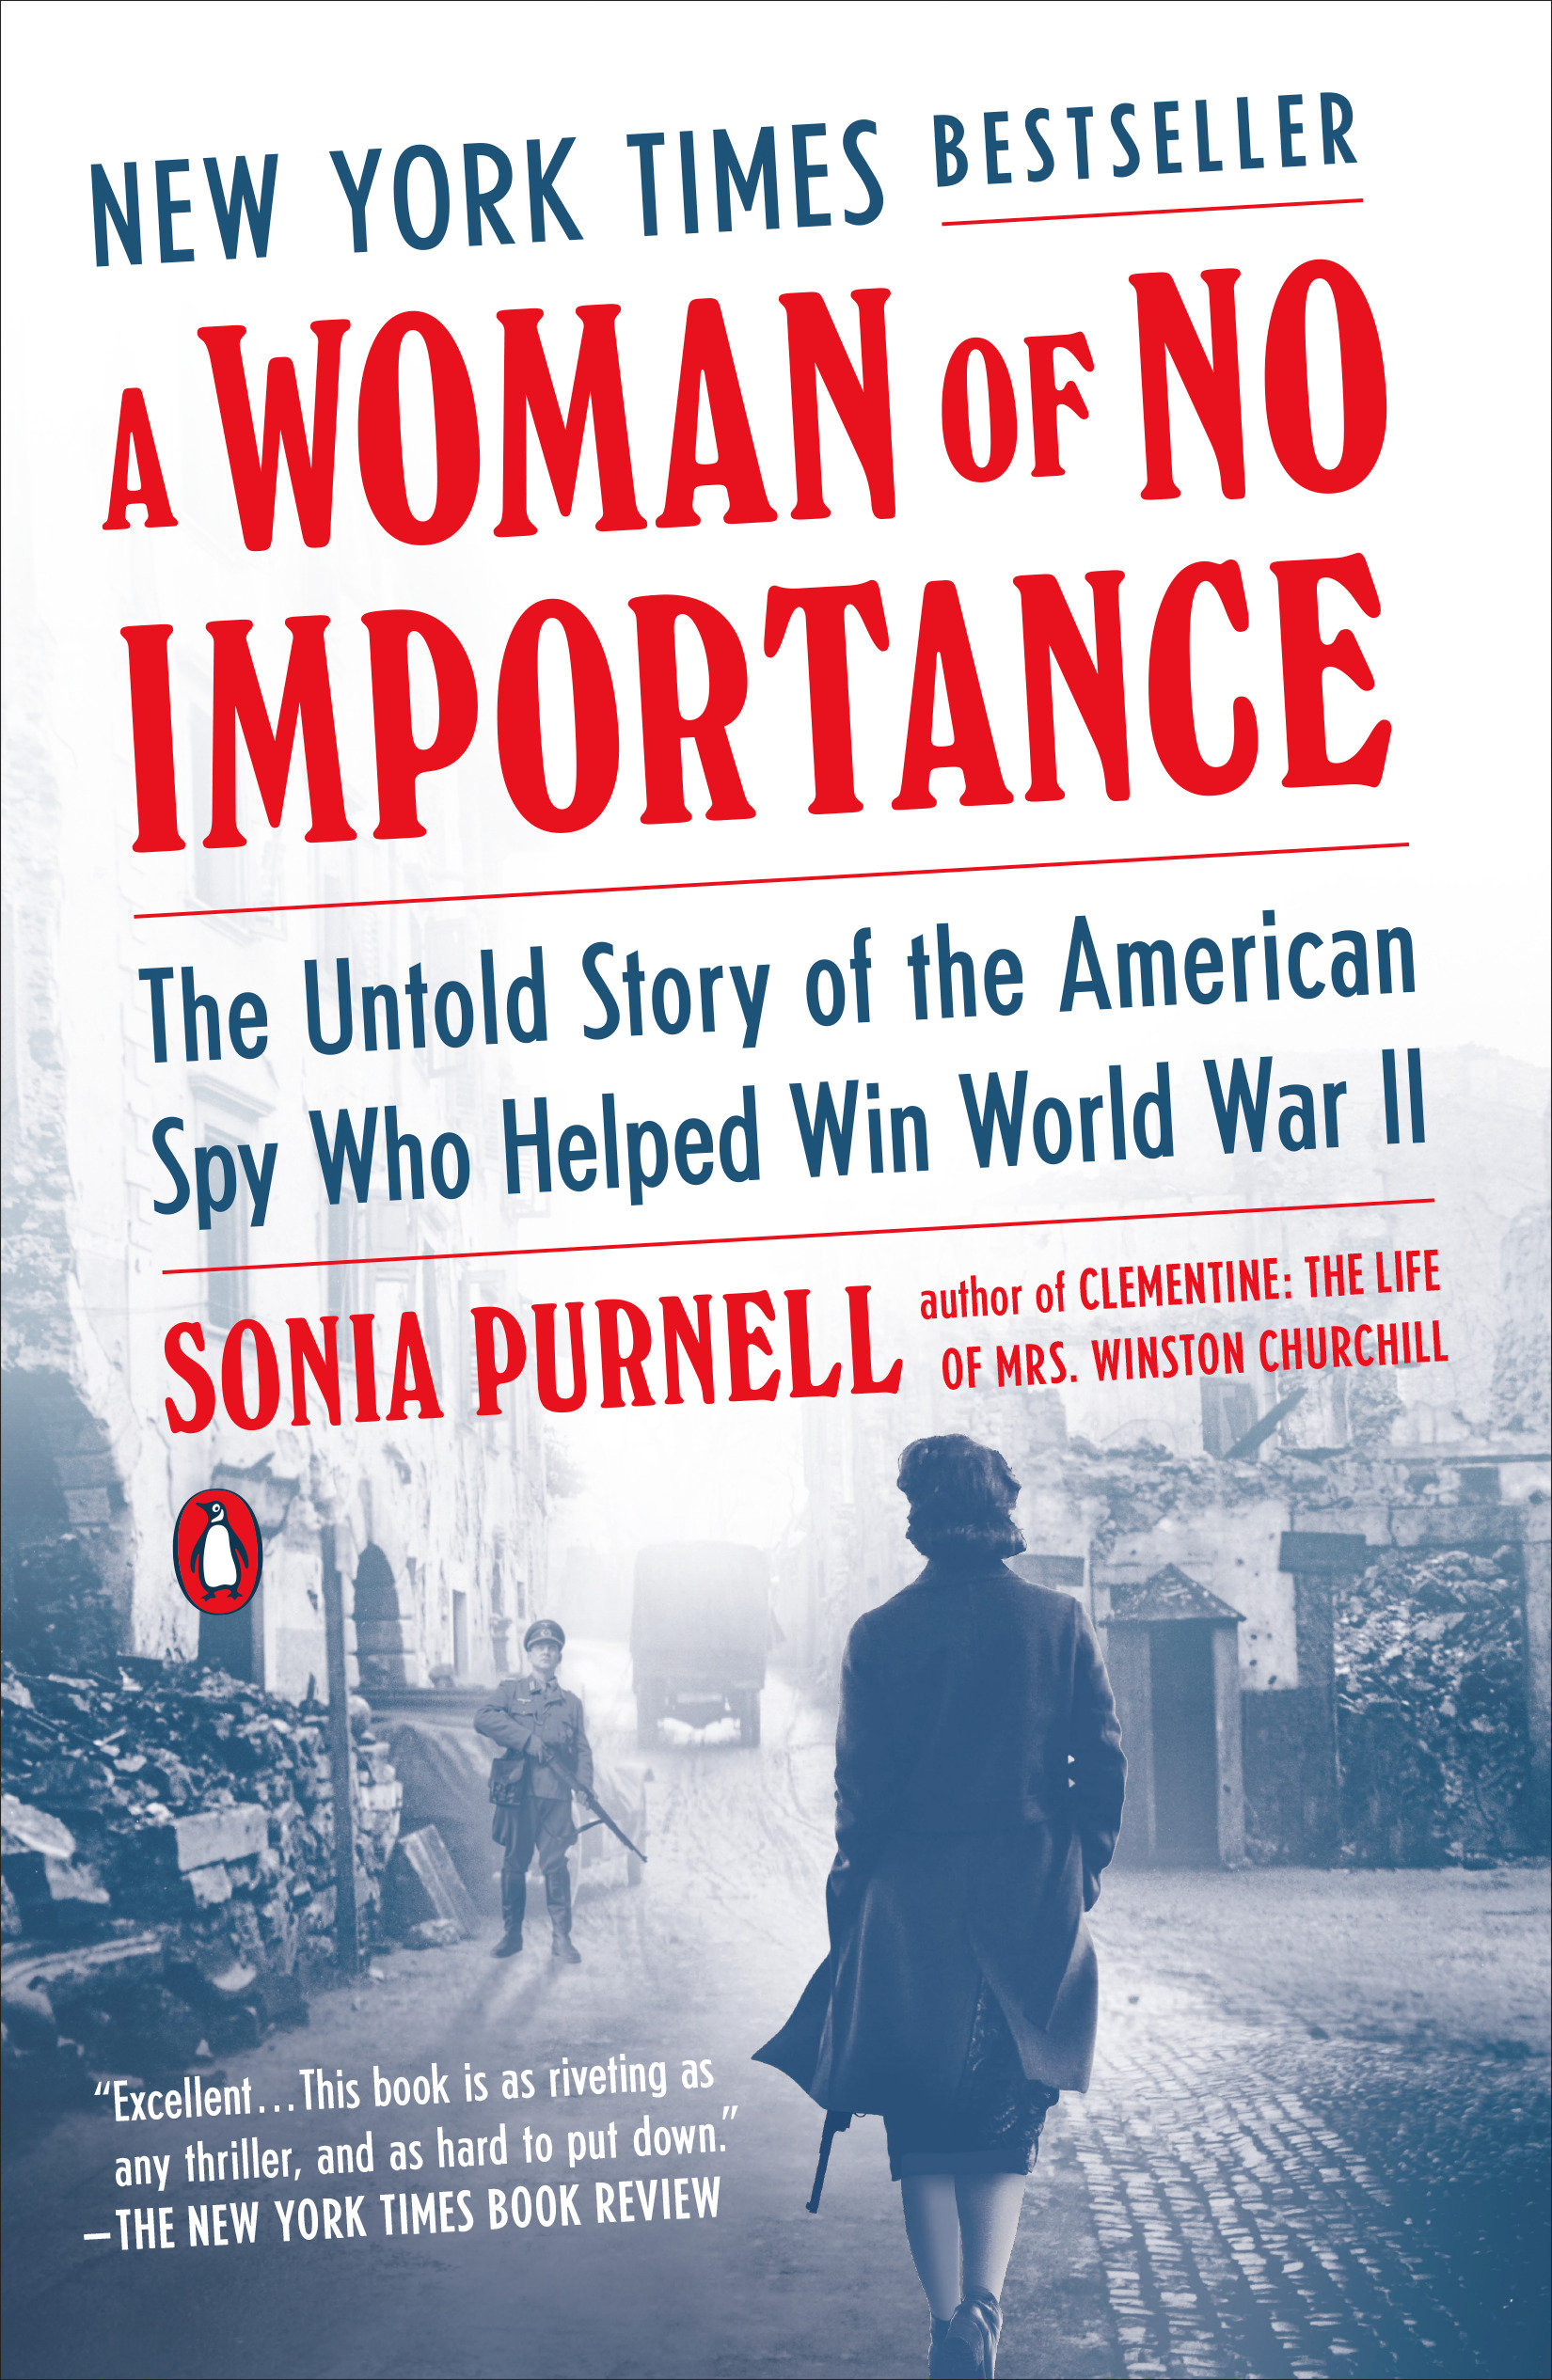 A Woman of No Importance [electronic resource] : The Untold Story of the American Spy Who Helped Win World War II